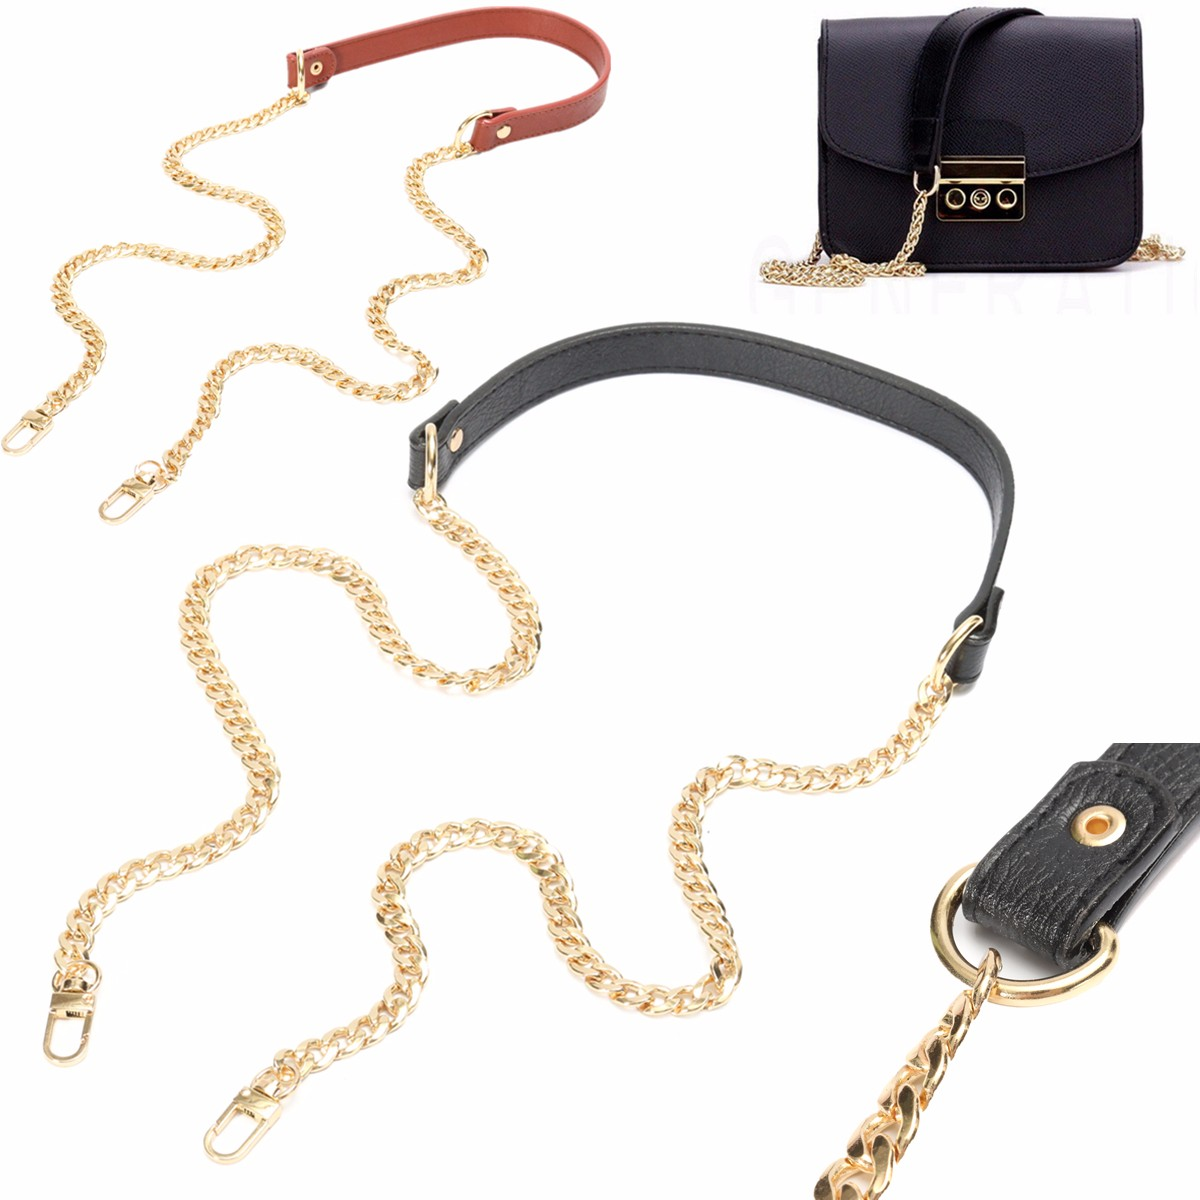 120cm Gold Chain Bag Straps Long Replacement Shoulder Belts Colorful Pu Leather Purse Handles For Handbags Belt Accessories In Parts